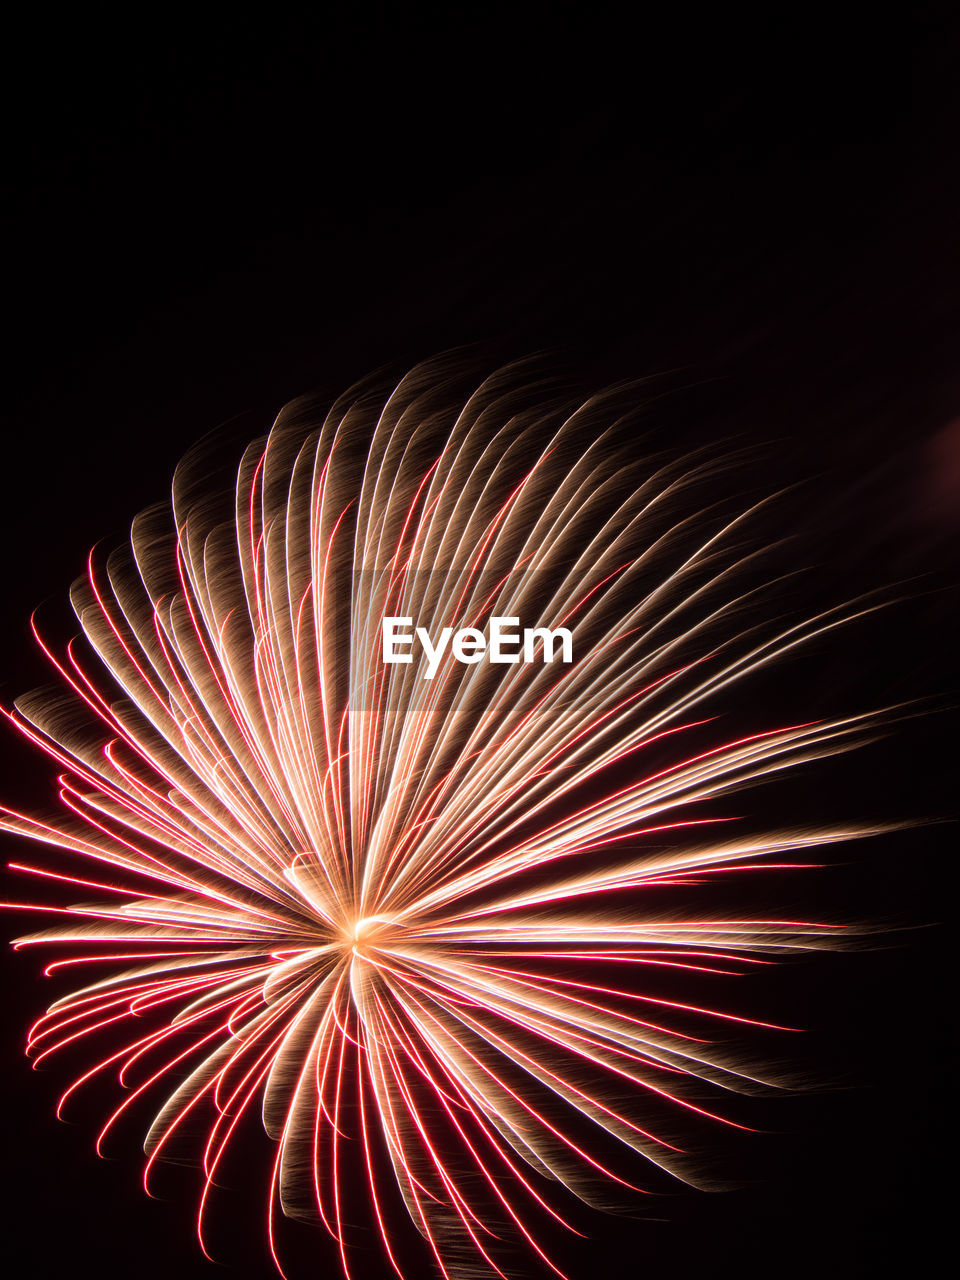 night, illuminated, motion, arts culture and entertainment, firework, glowing, long exposure, firework display, exploding, celebration, no people, sky, event, blurred motion, low angle view, light, light - natural phenomenon, nature, sparks, black background, firework - man made object, explosive